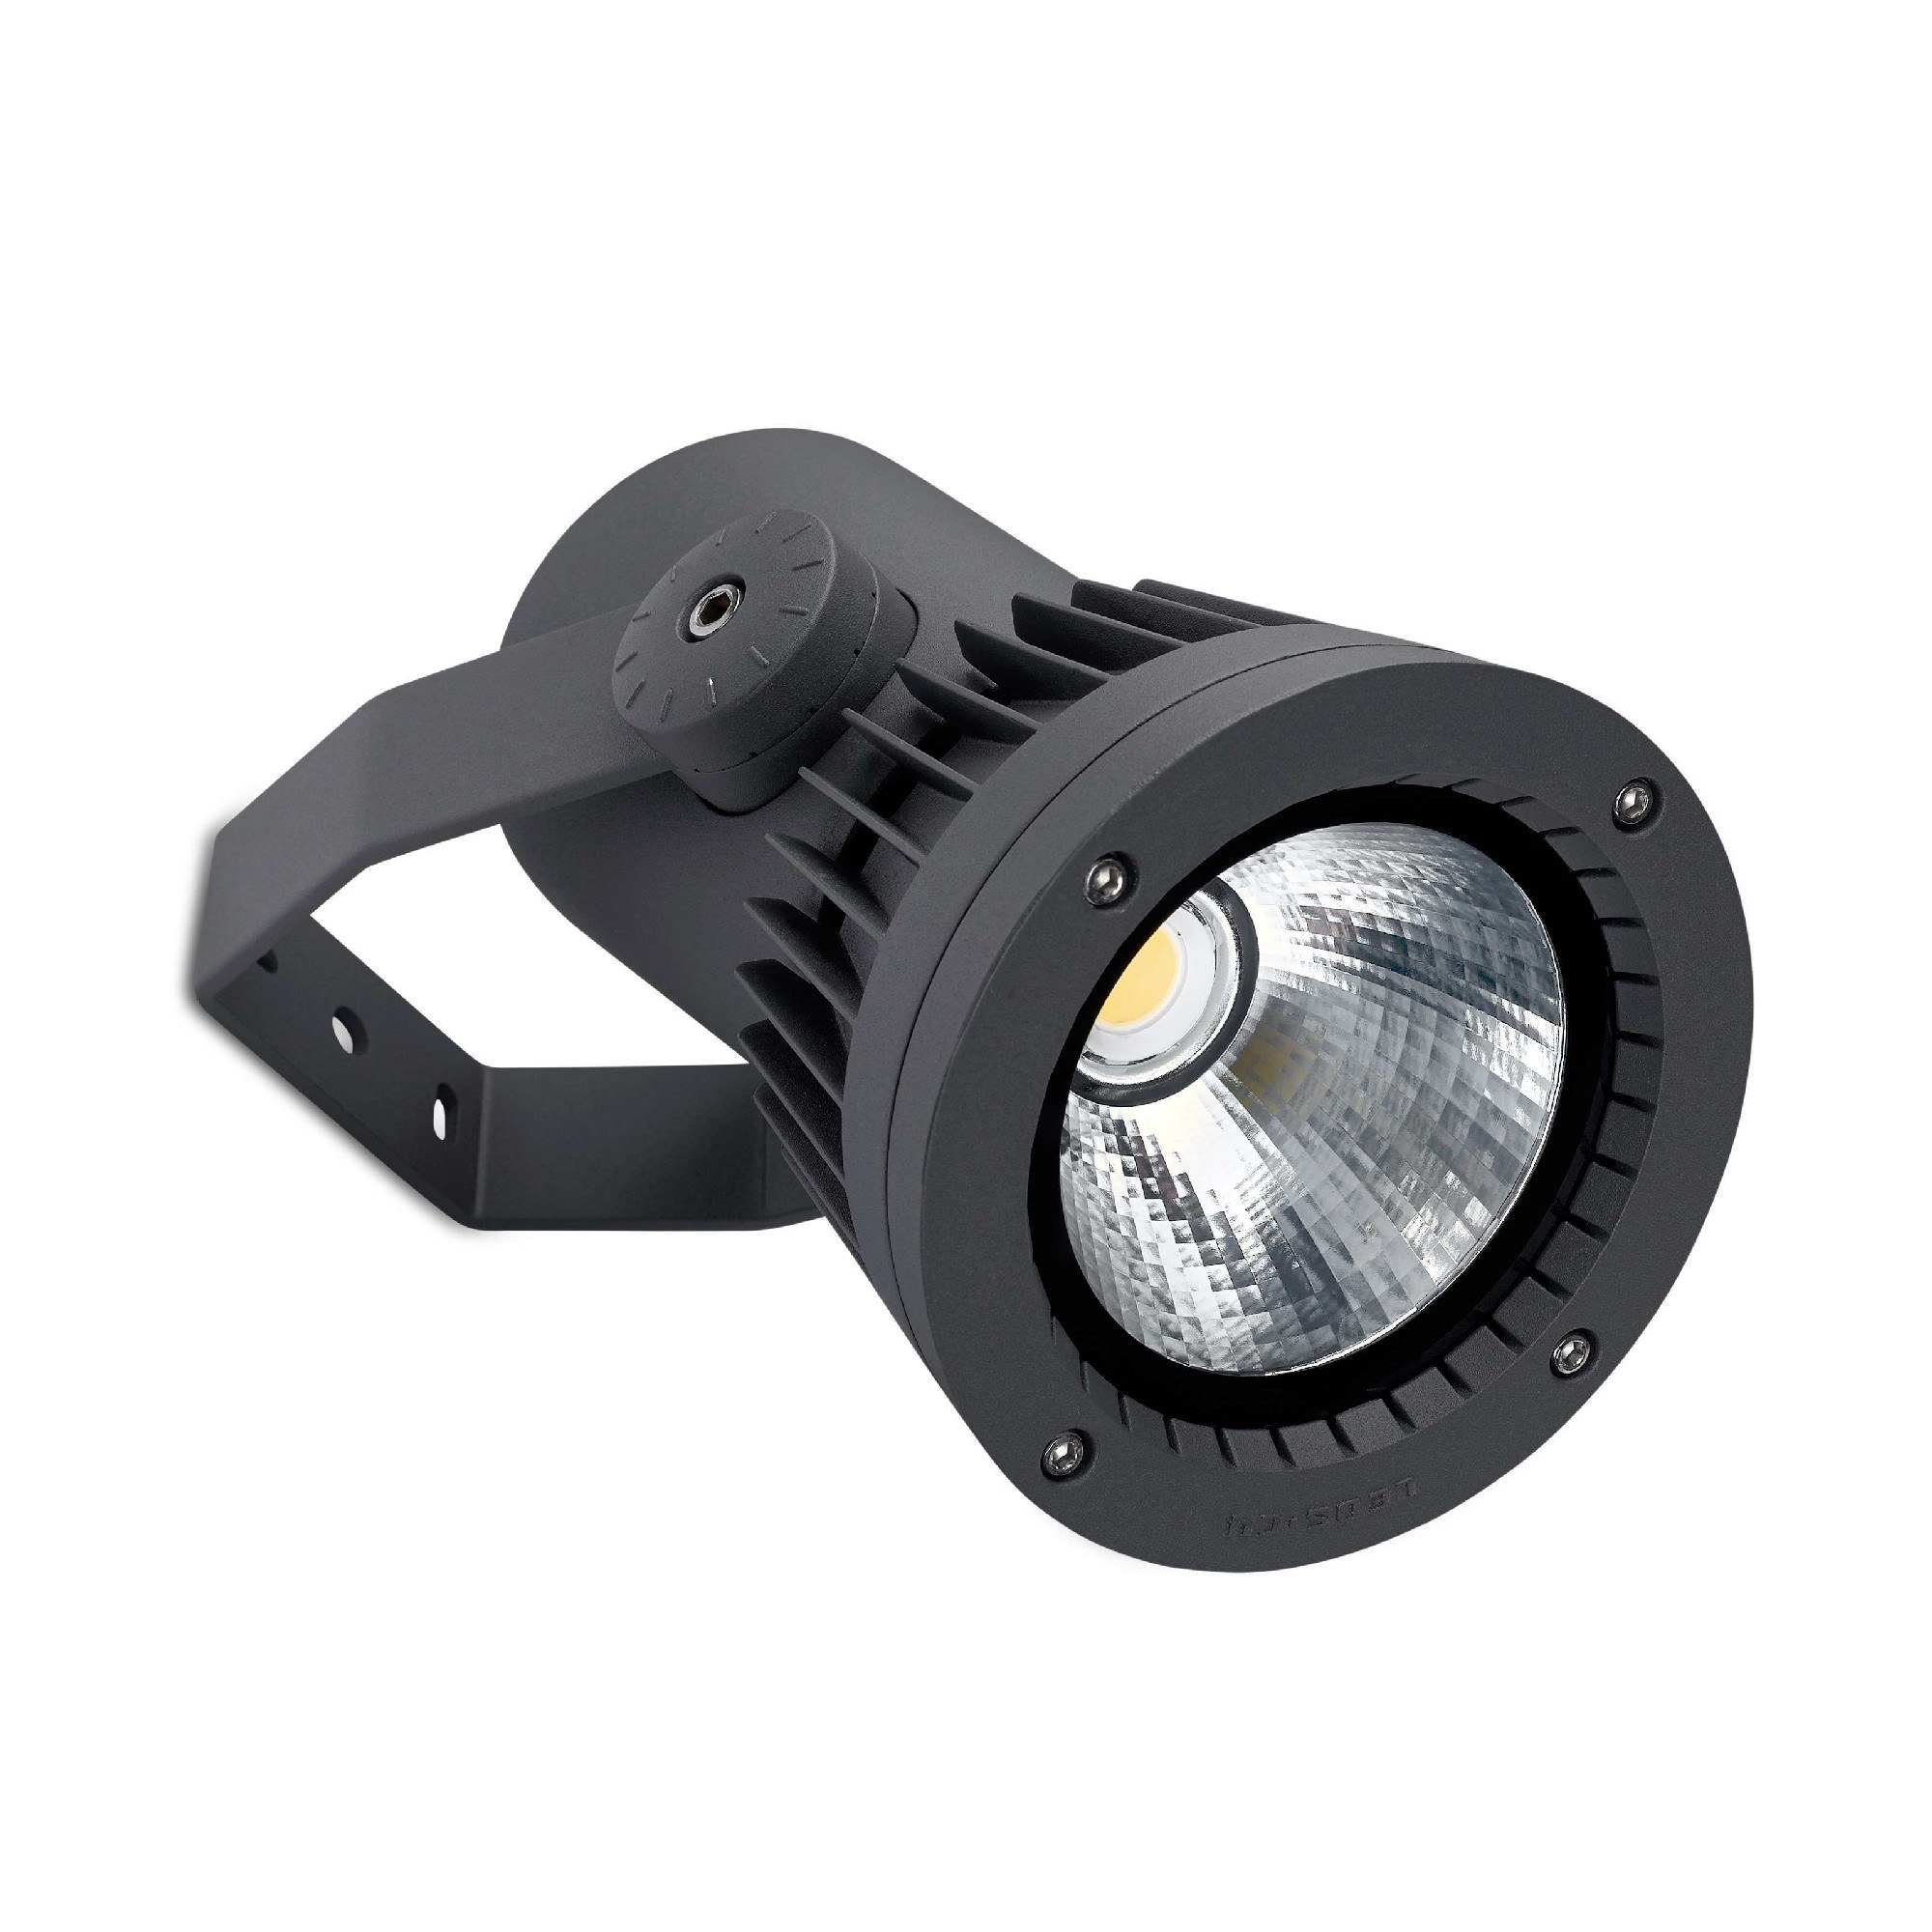 Leds C4 OUTDOOR 05 9959 Z5 CL LED lampen